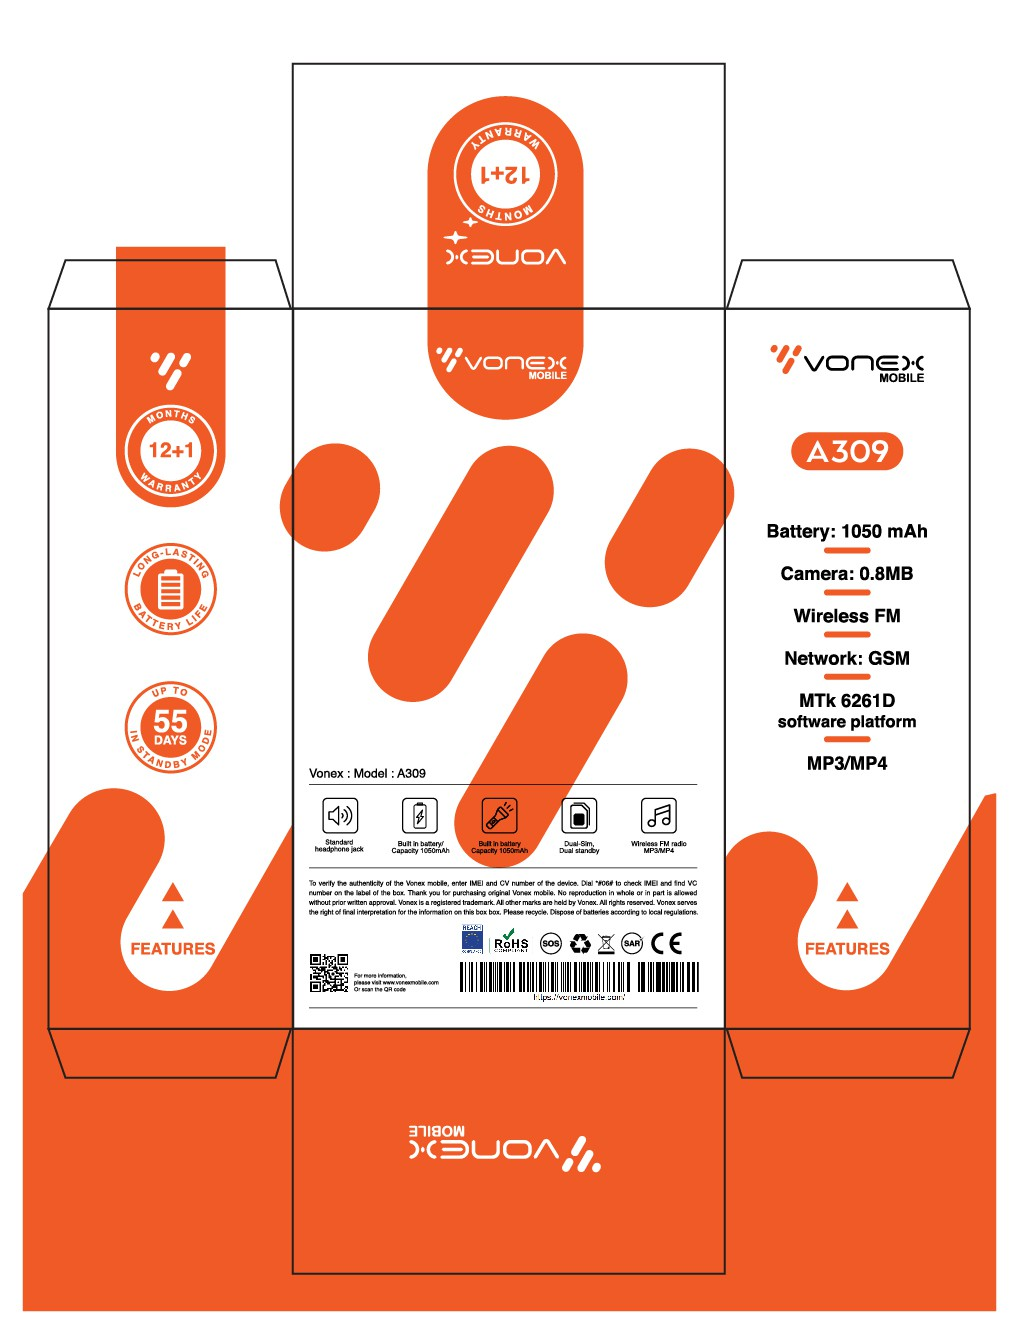 Package for Vonex phone